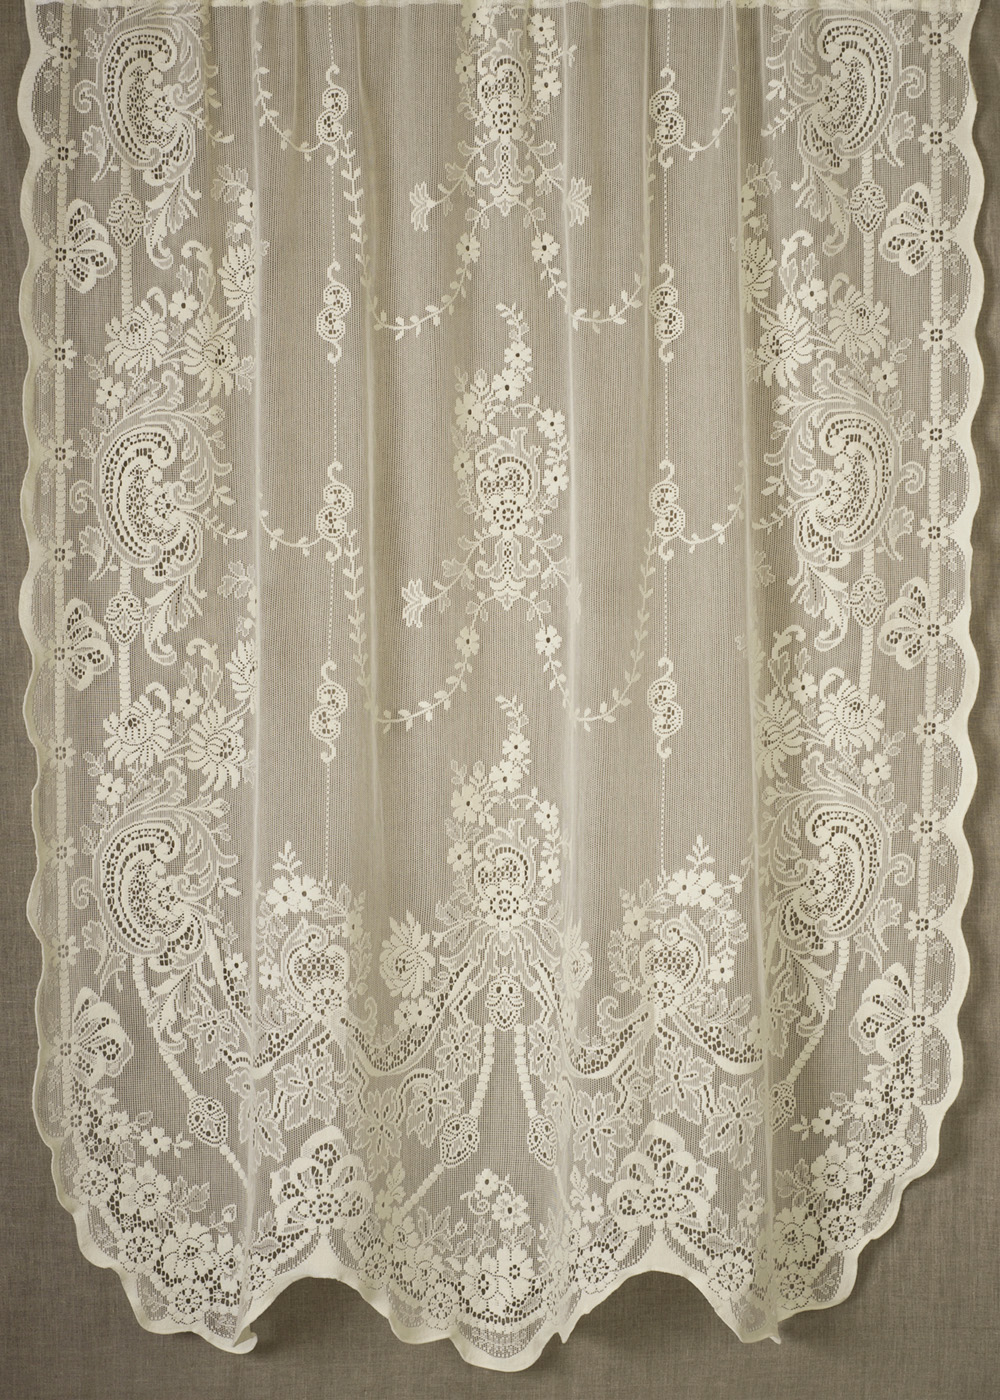 Window curtains design lace panel curtains with attached valance - London Lace Valances And Cafe Curtains Specializing In The